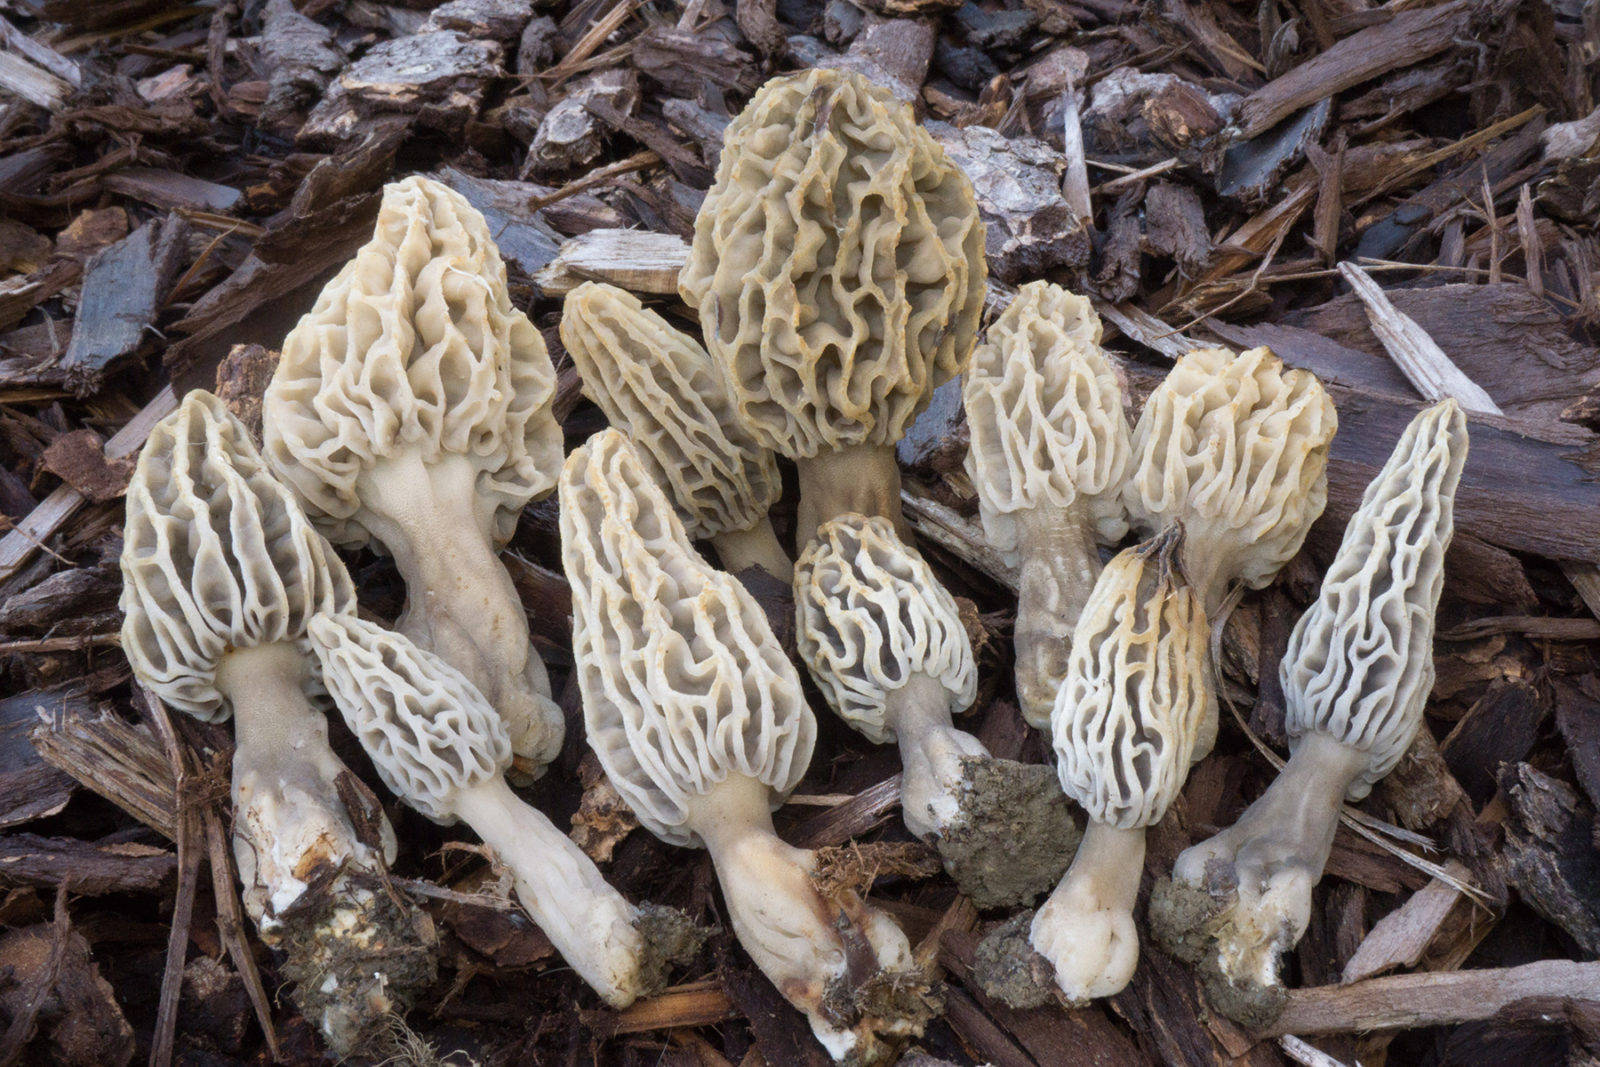 Bay Nature: Where Do Morel Mushrooms Grow in Northern California